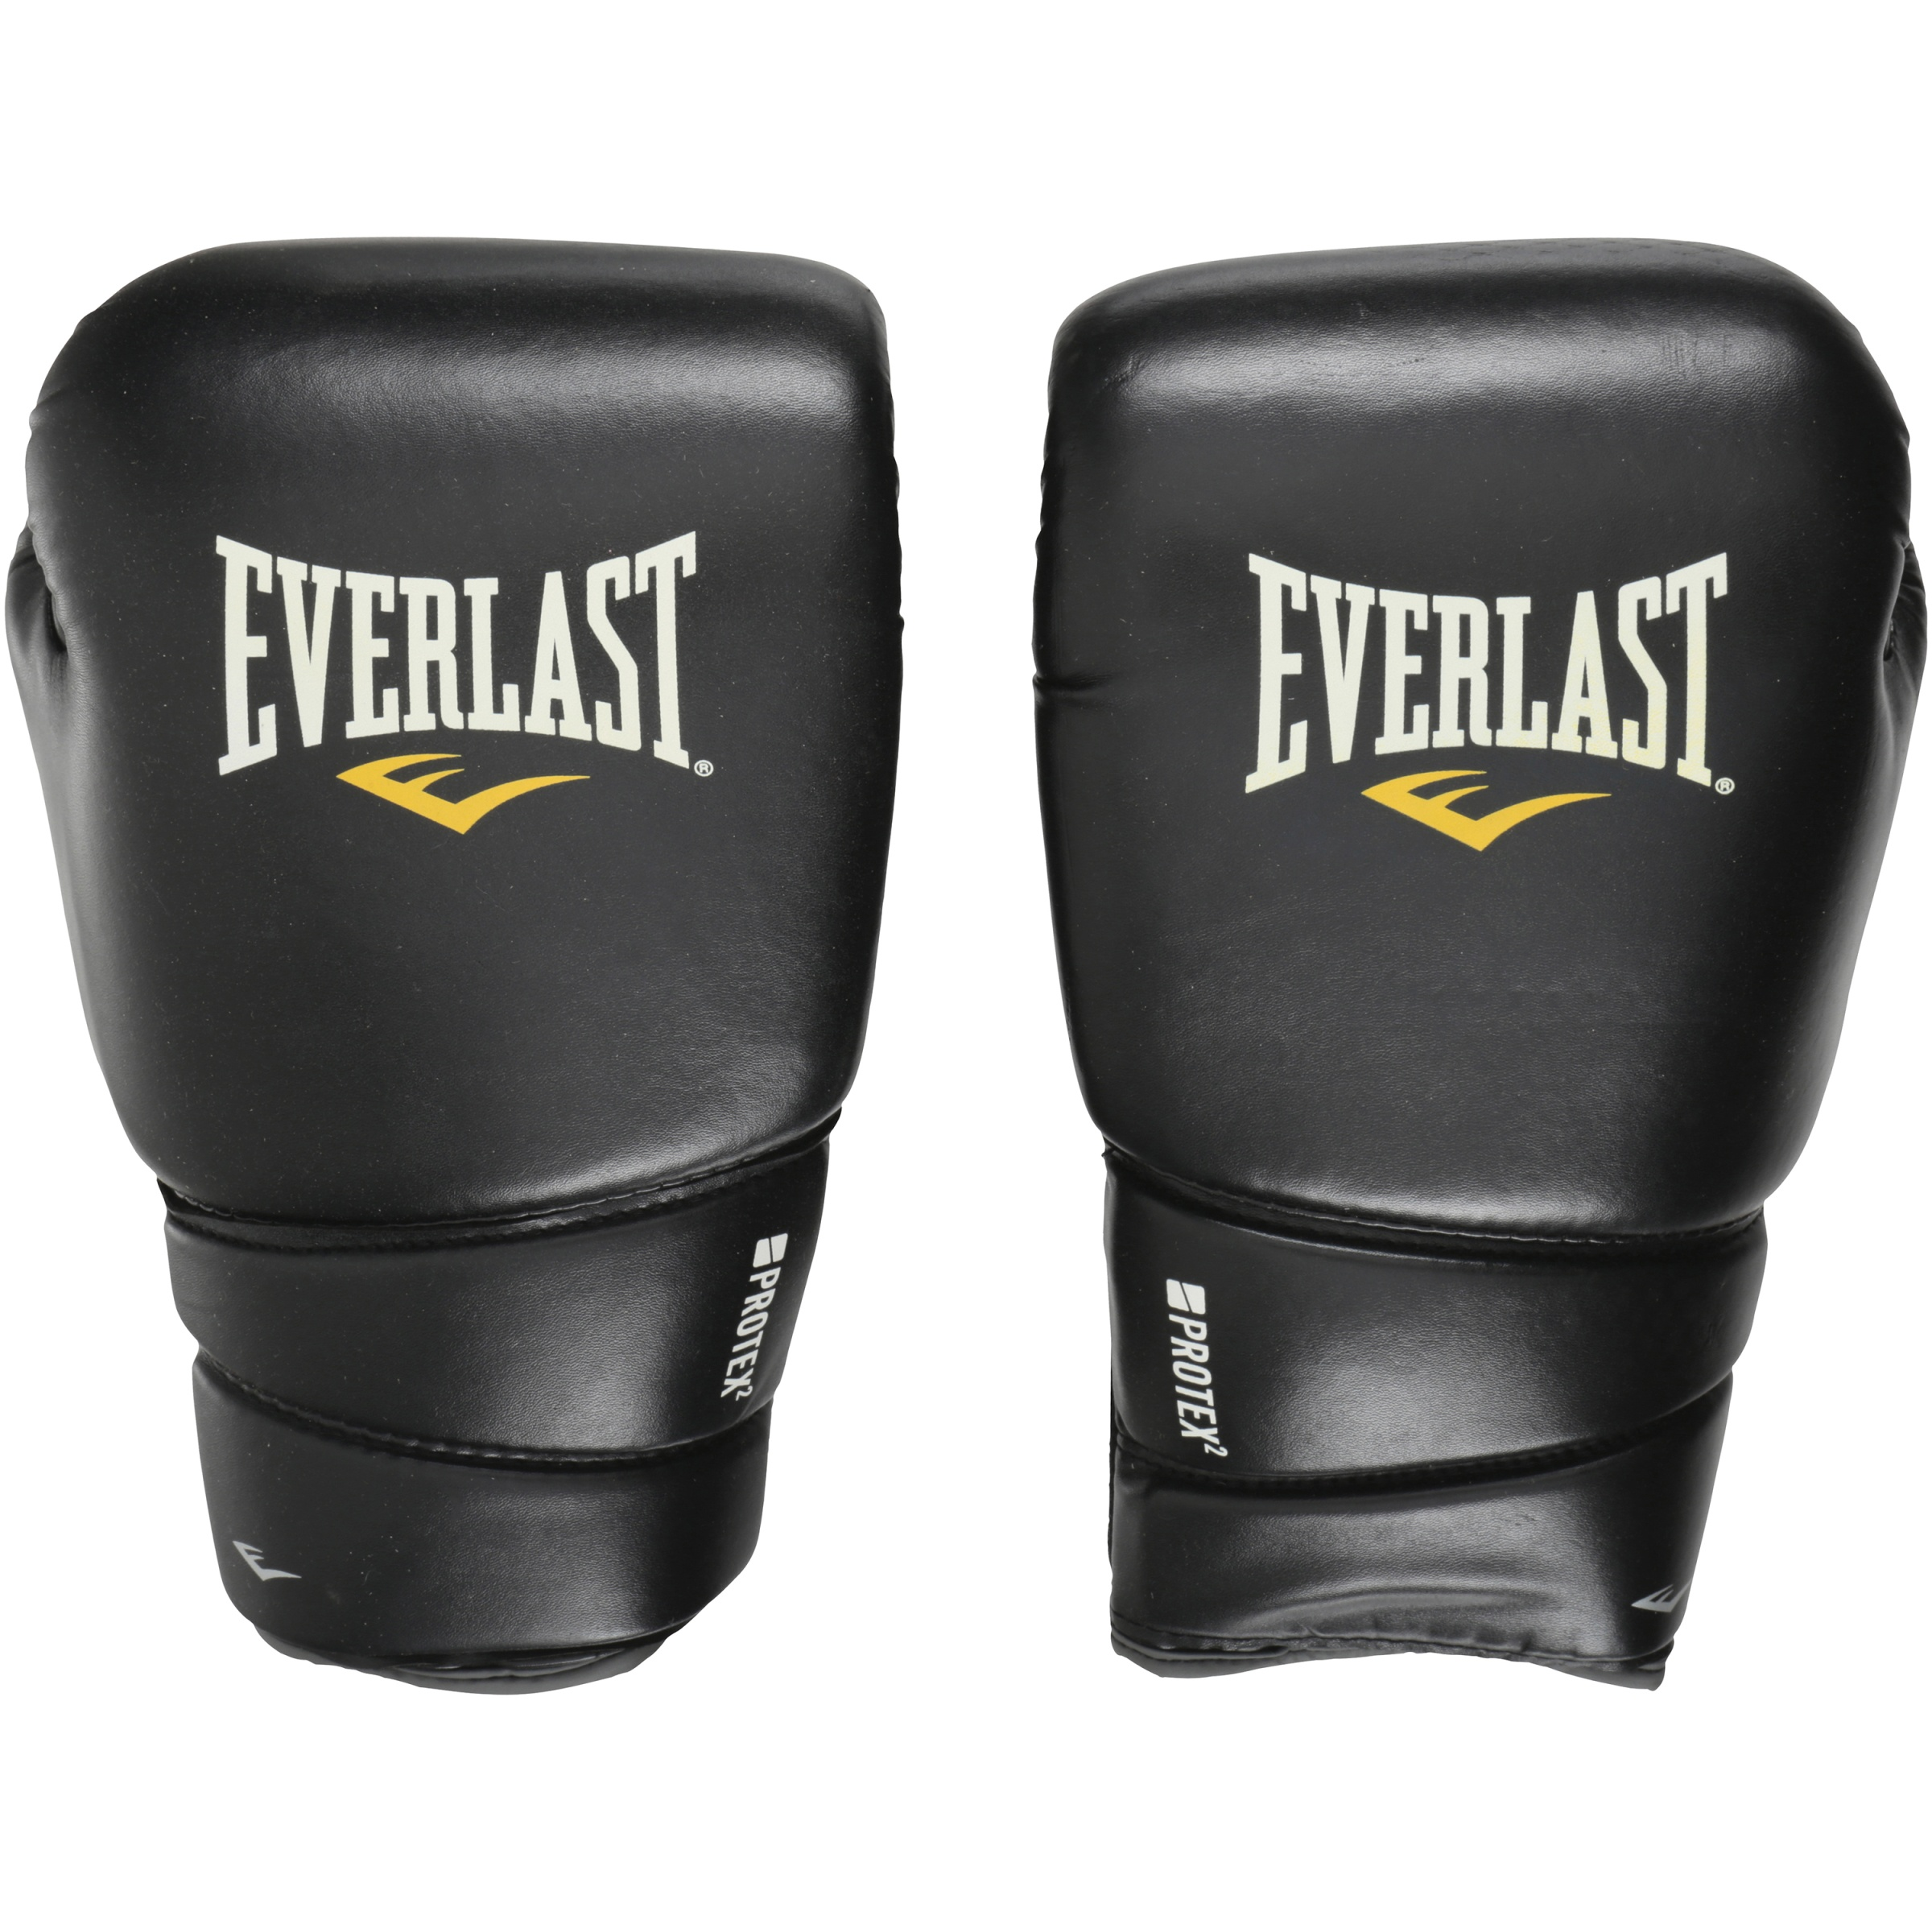 Everlast® Elite Protex² Muay Thai Training Gloves